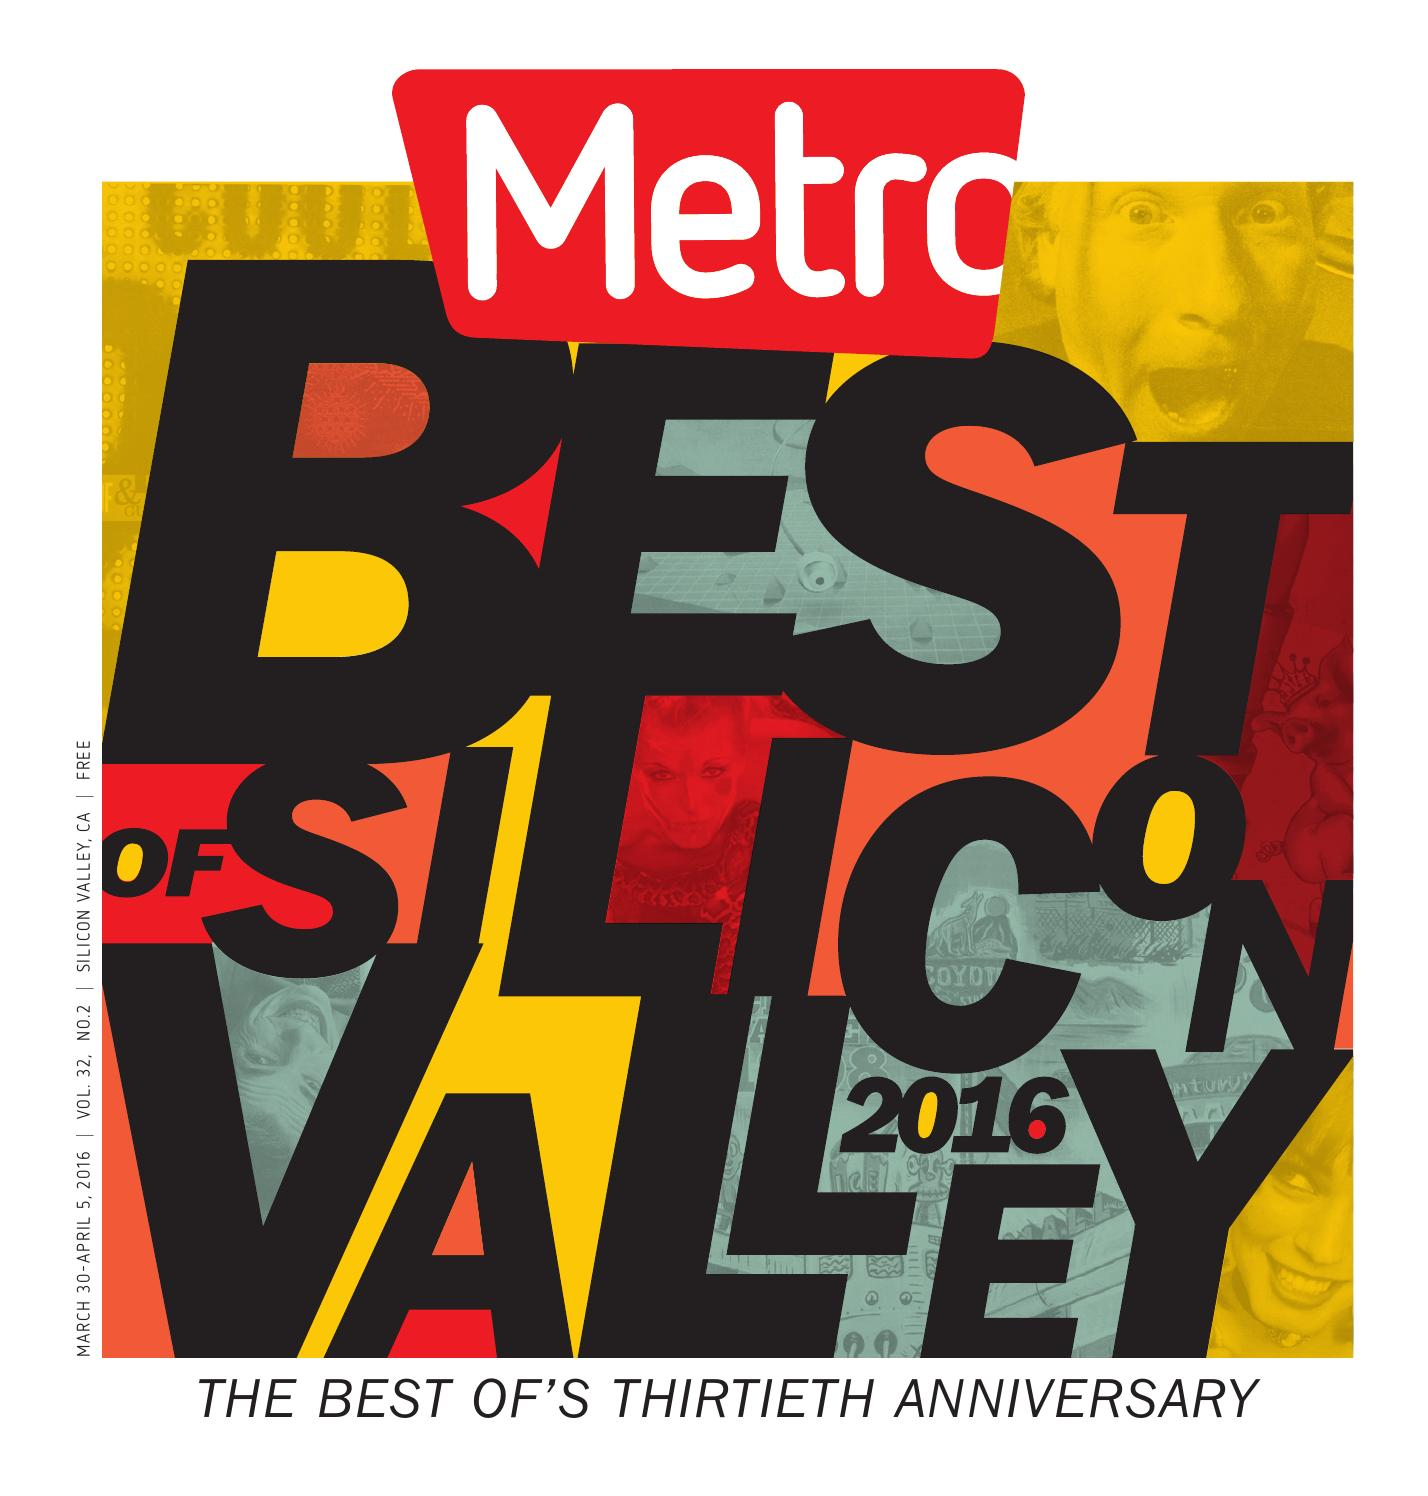 3bac9c5710 Metro Silicon Valley by Metro Publishing - issuu